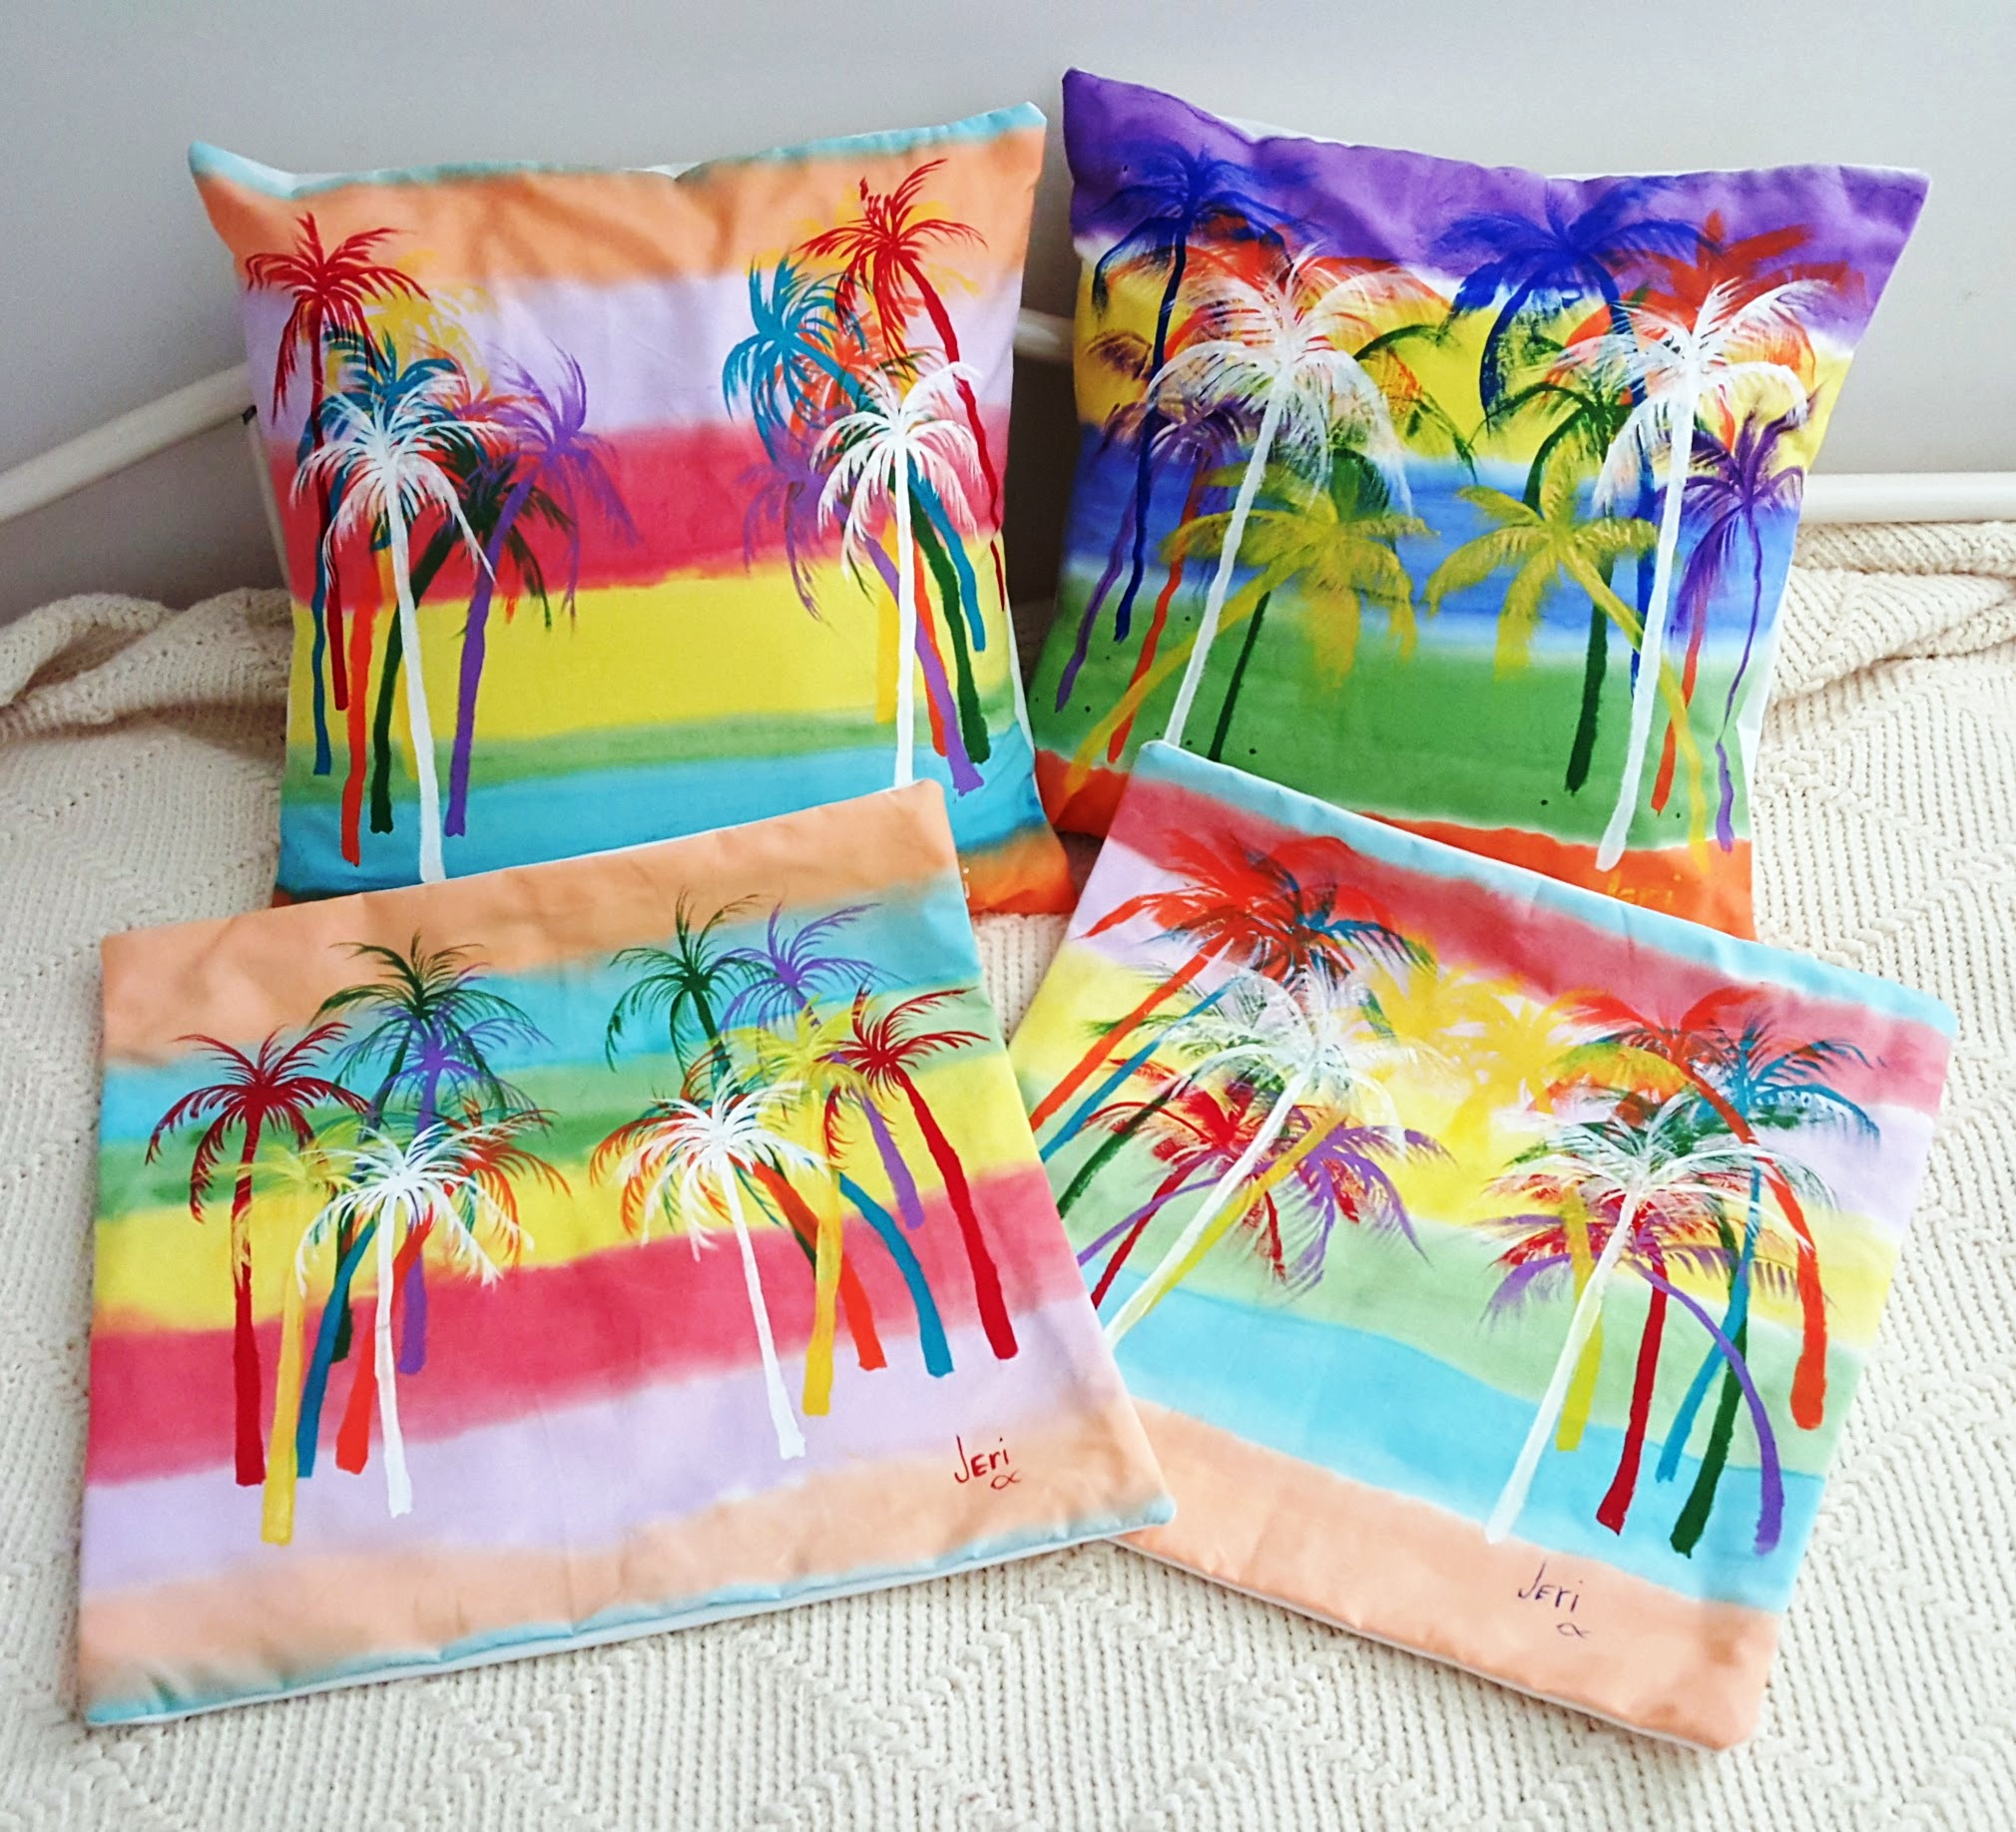 Look what mom-in-law makes: pocket style pillow covers, hand sewn and painted. Unique, no two will be exactly alike.Just insert your existing pillow and your done! A typical 16 inch cover sells for $15 plus shipping, prices for special orders or sizes on request. (Some of her fish and flower pillows are pretty cool too!)